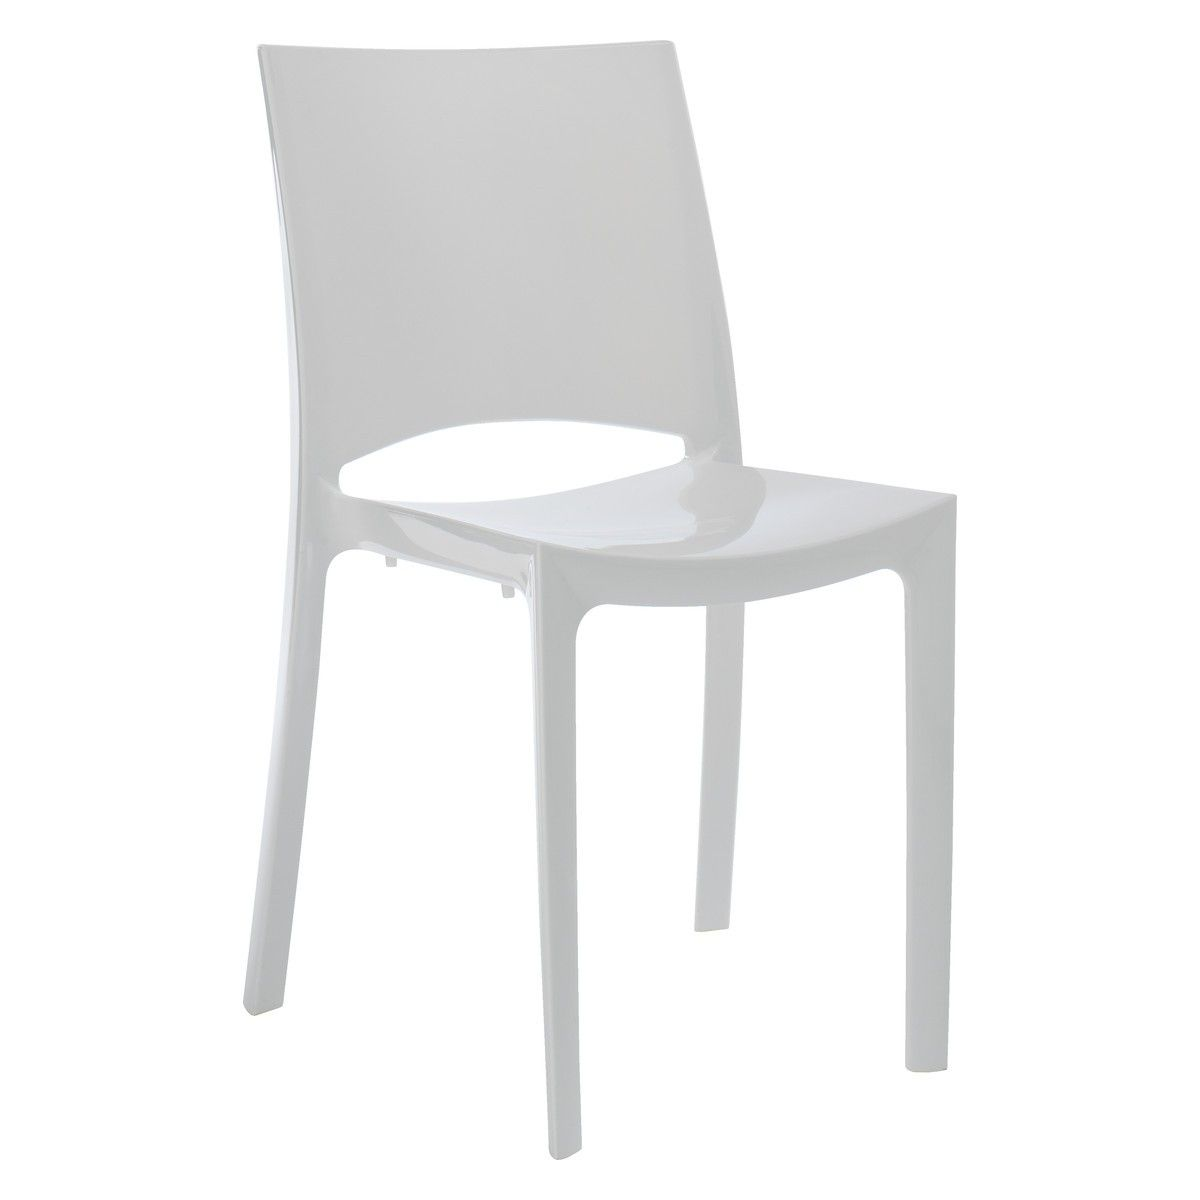 Plastic Dining Chairs Verne White Plastic Stackable Dining Chair Buy Now At